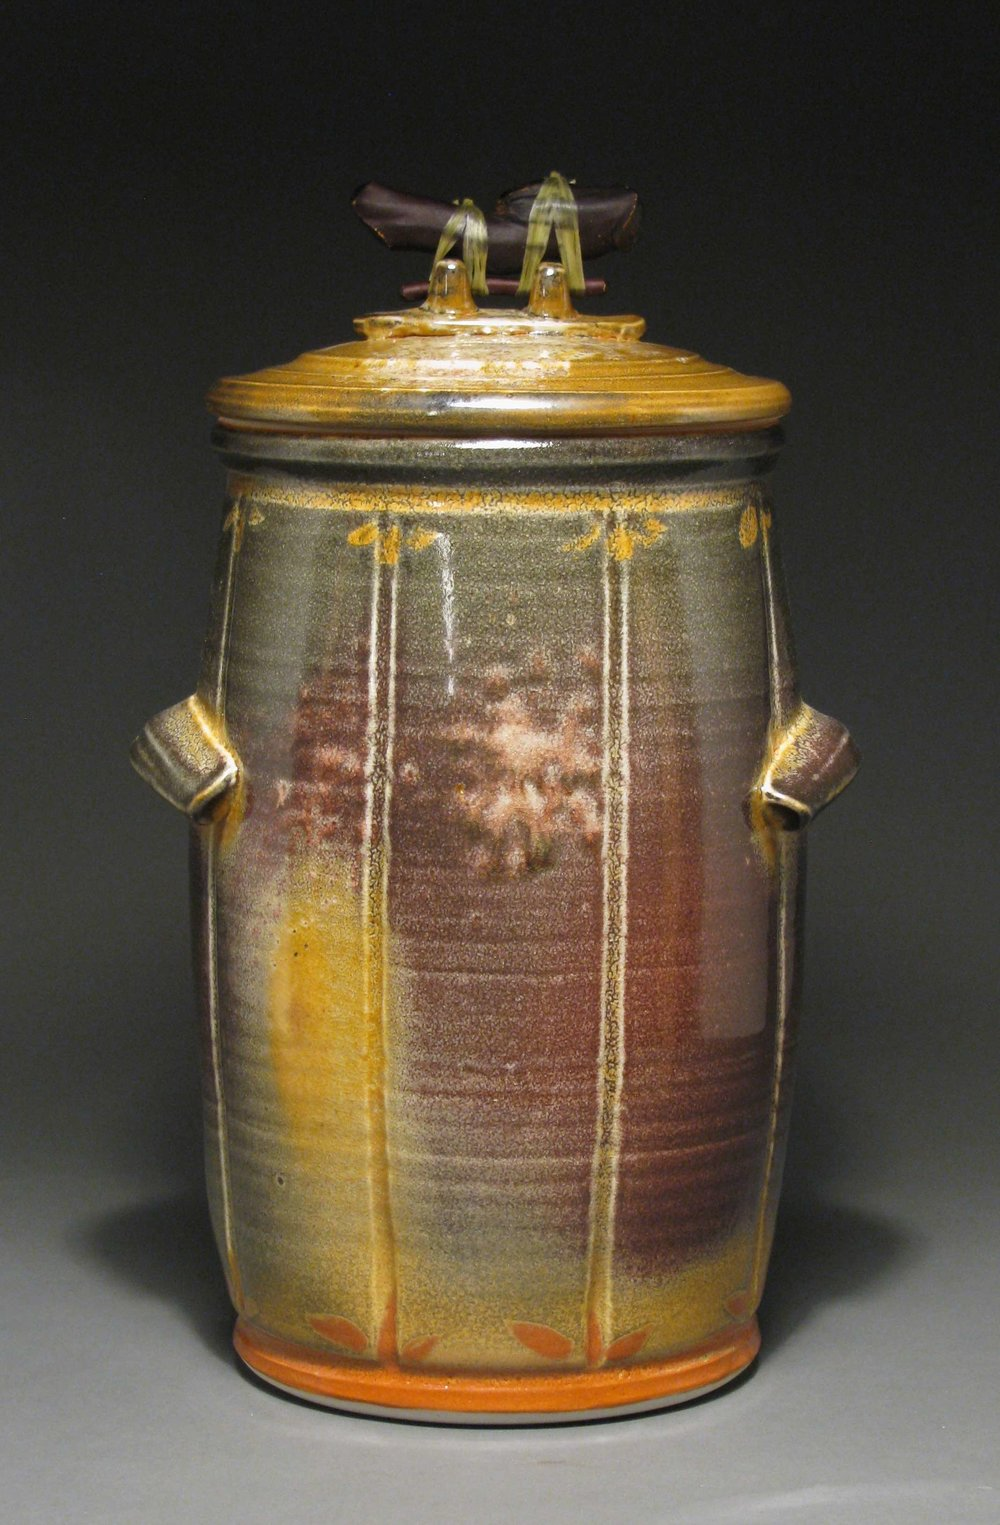 "Compost jar 14"" tall Glaze: Davis shino"